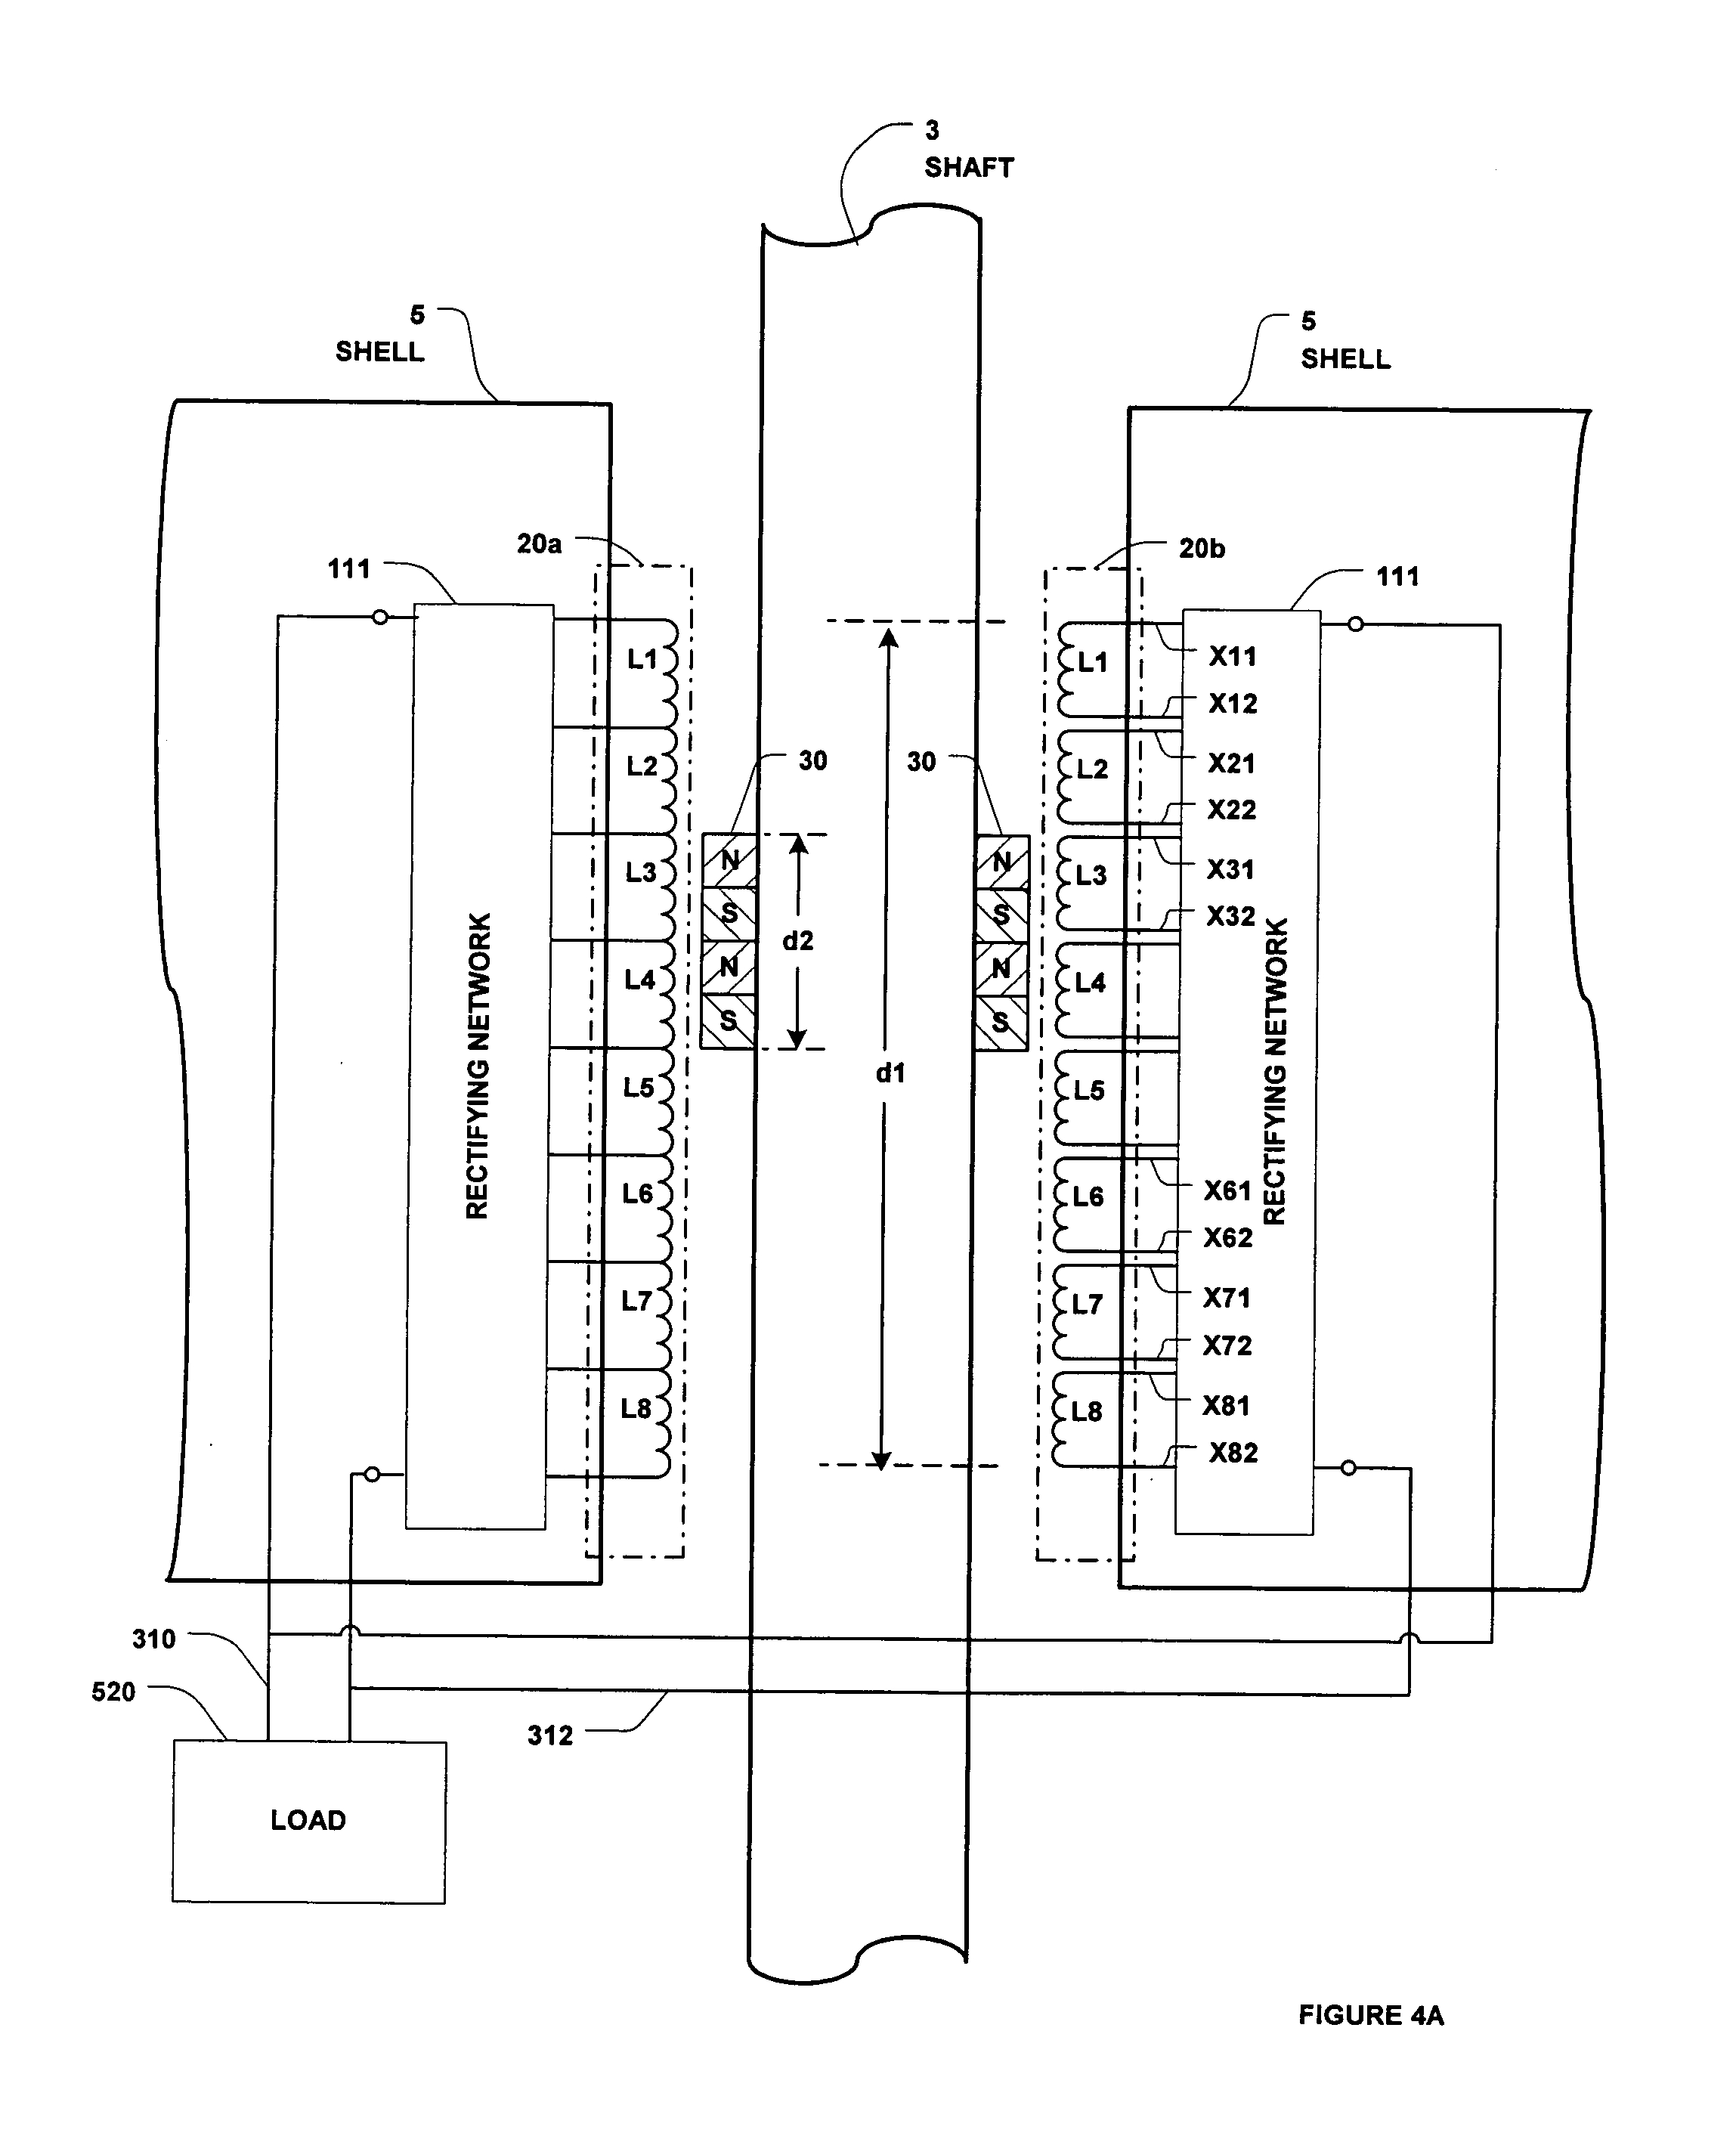 Patent US Circuitry for increasing efficiency of a linear